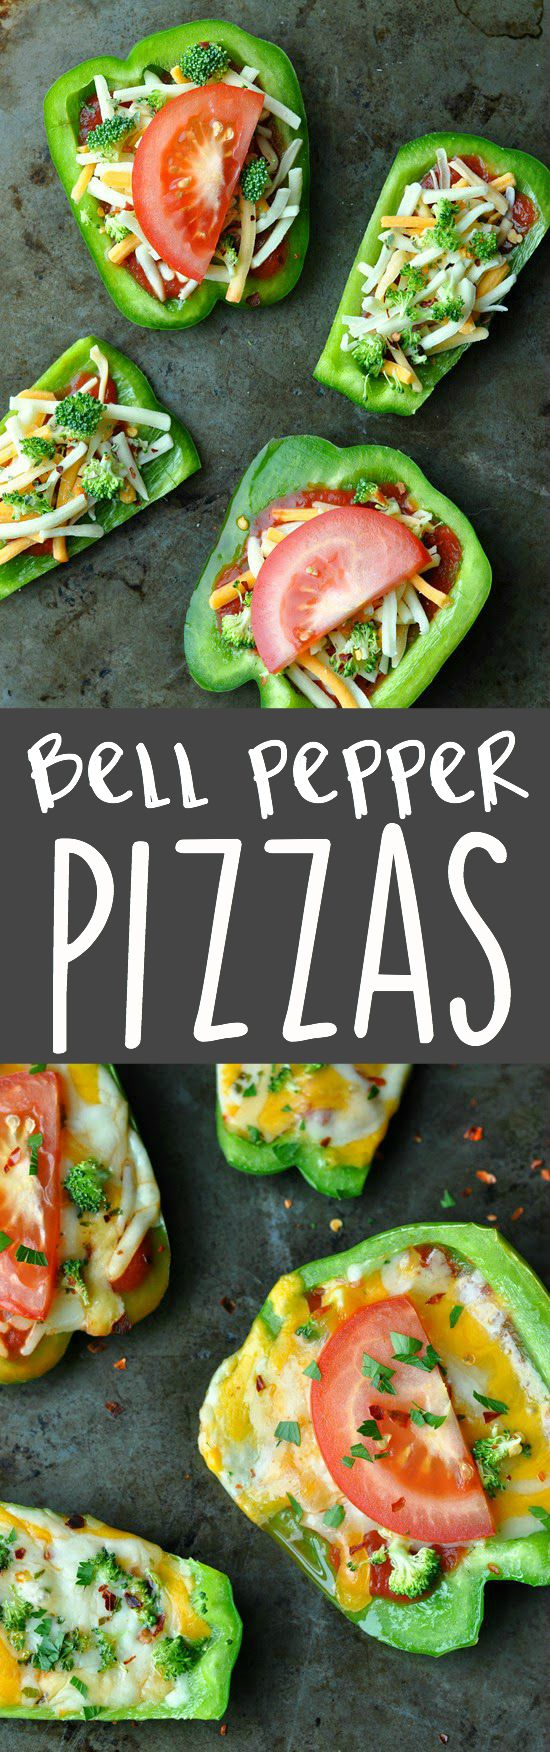 Ditch the crust and grab a bell pepper! These mini pizzas rock!